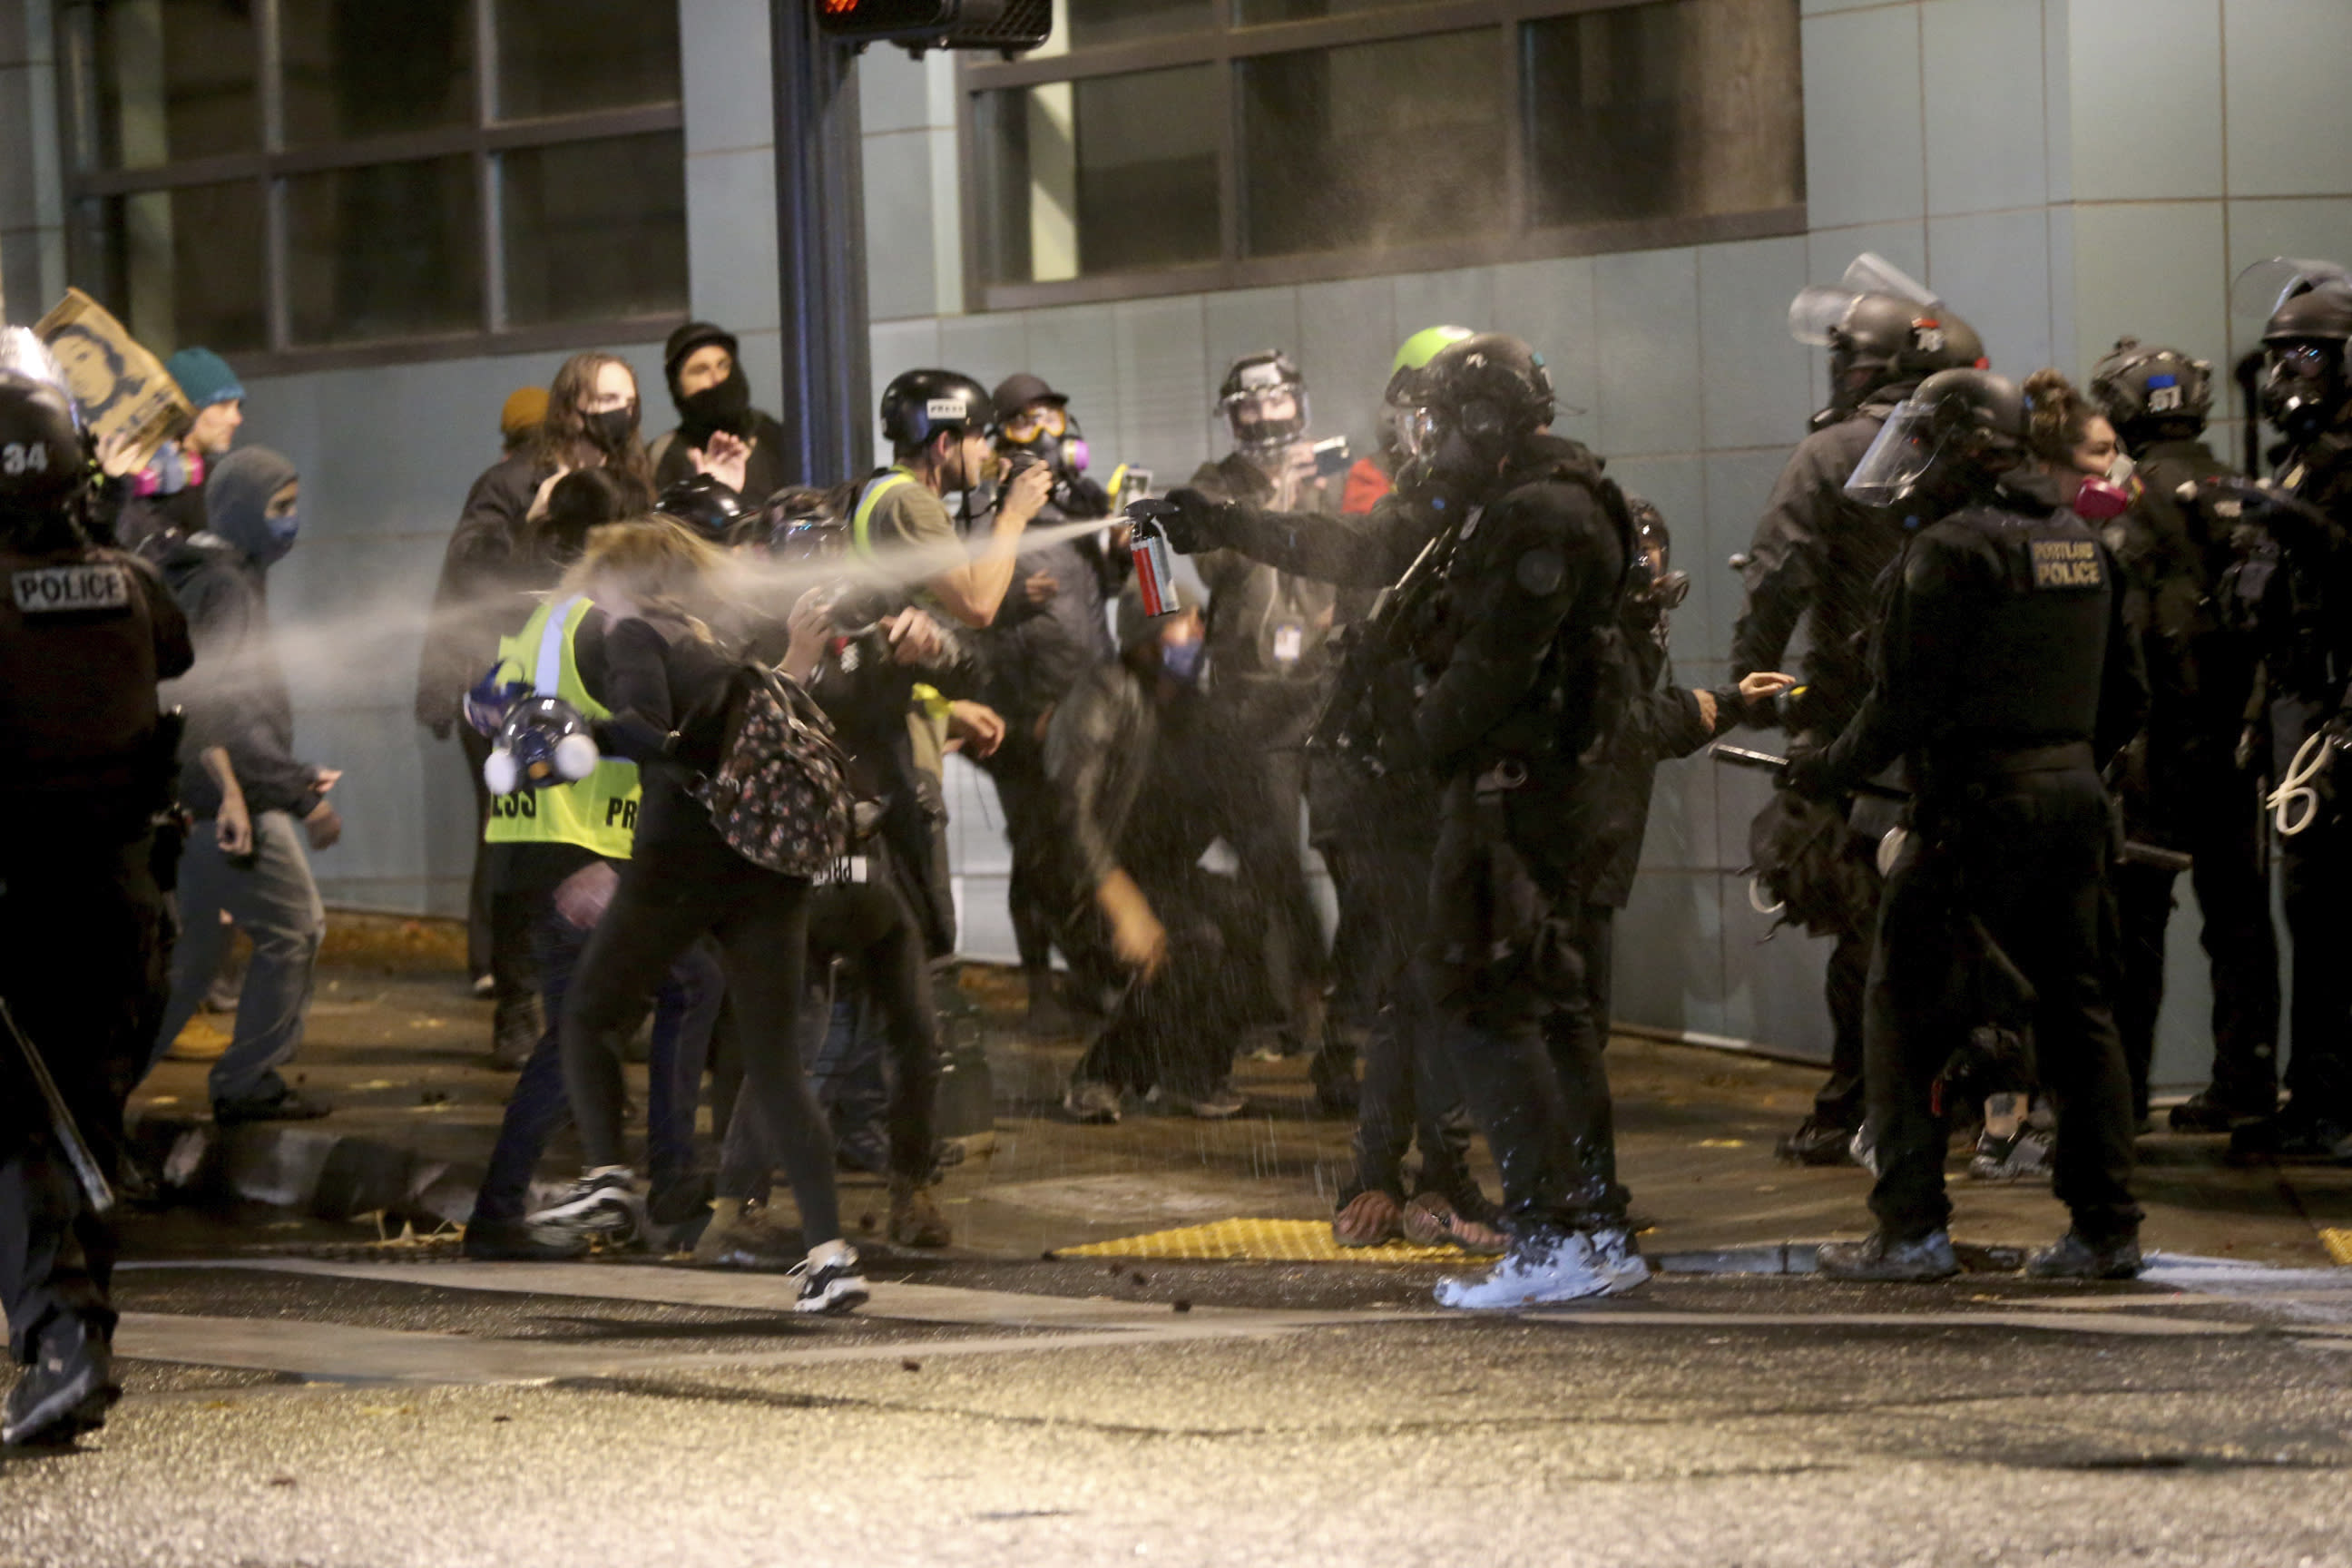 Protesters demanding the end of police violence against Black people are sprayed by police during a demonstration in Portland, Ore., on Wednesday, Sept. 23, 2020. Protesters in Portland hurled Molotov cocktails at officers in Oregon's largest city during a demonstration over a Kentucky grand jury's decision to not indict officers in the fatal shooting of Breonna Taylor, police said Thursday. (Mark Graves/The Oregonian via AP)